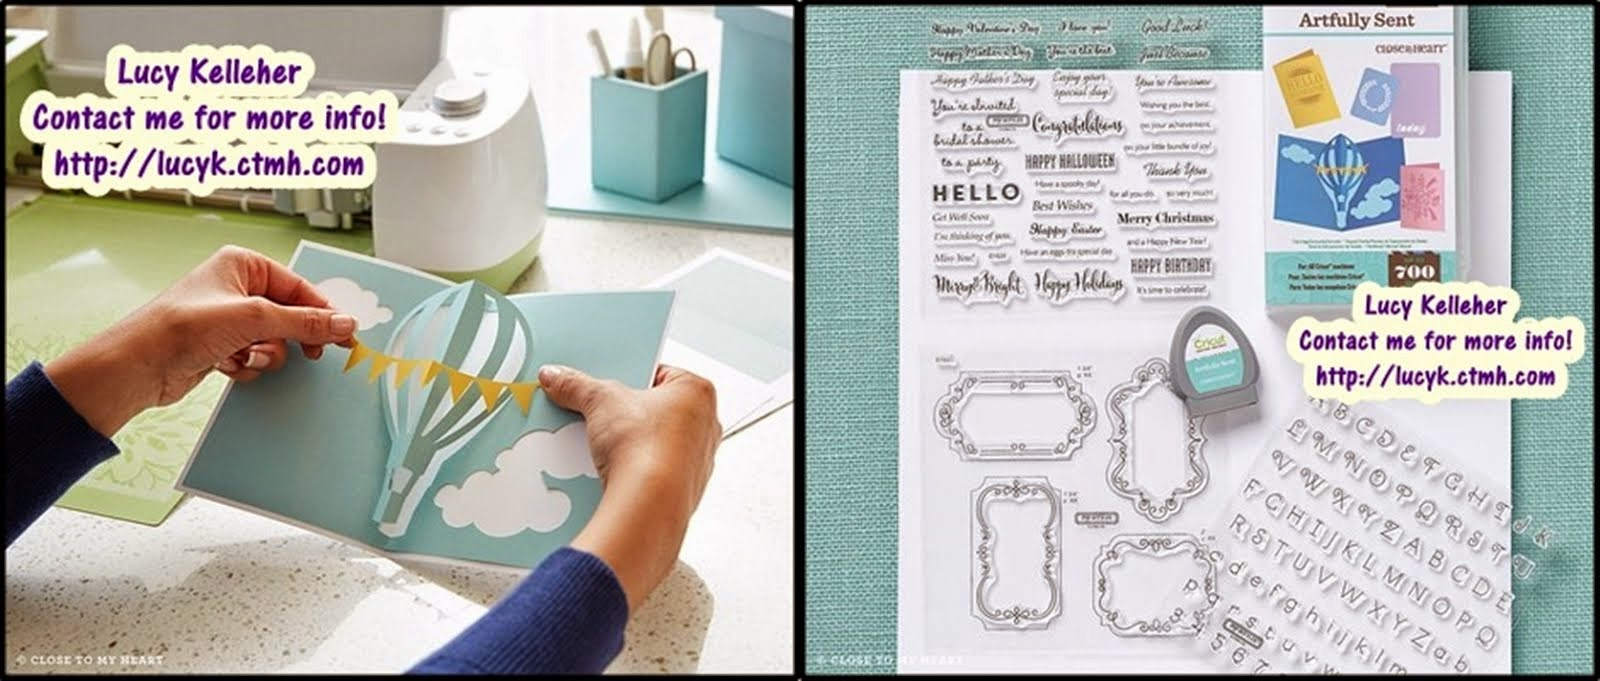 Artfully Sent Cricut Cartridge (Exclusive to CTMH!)